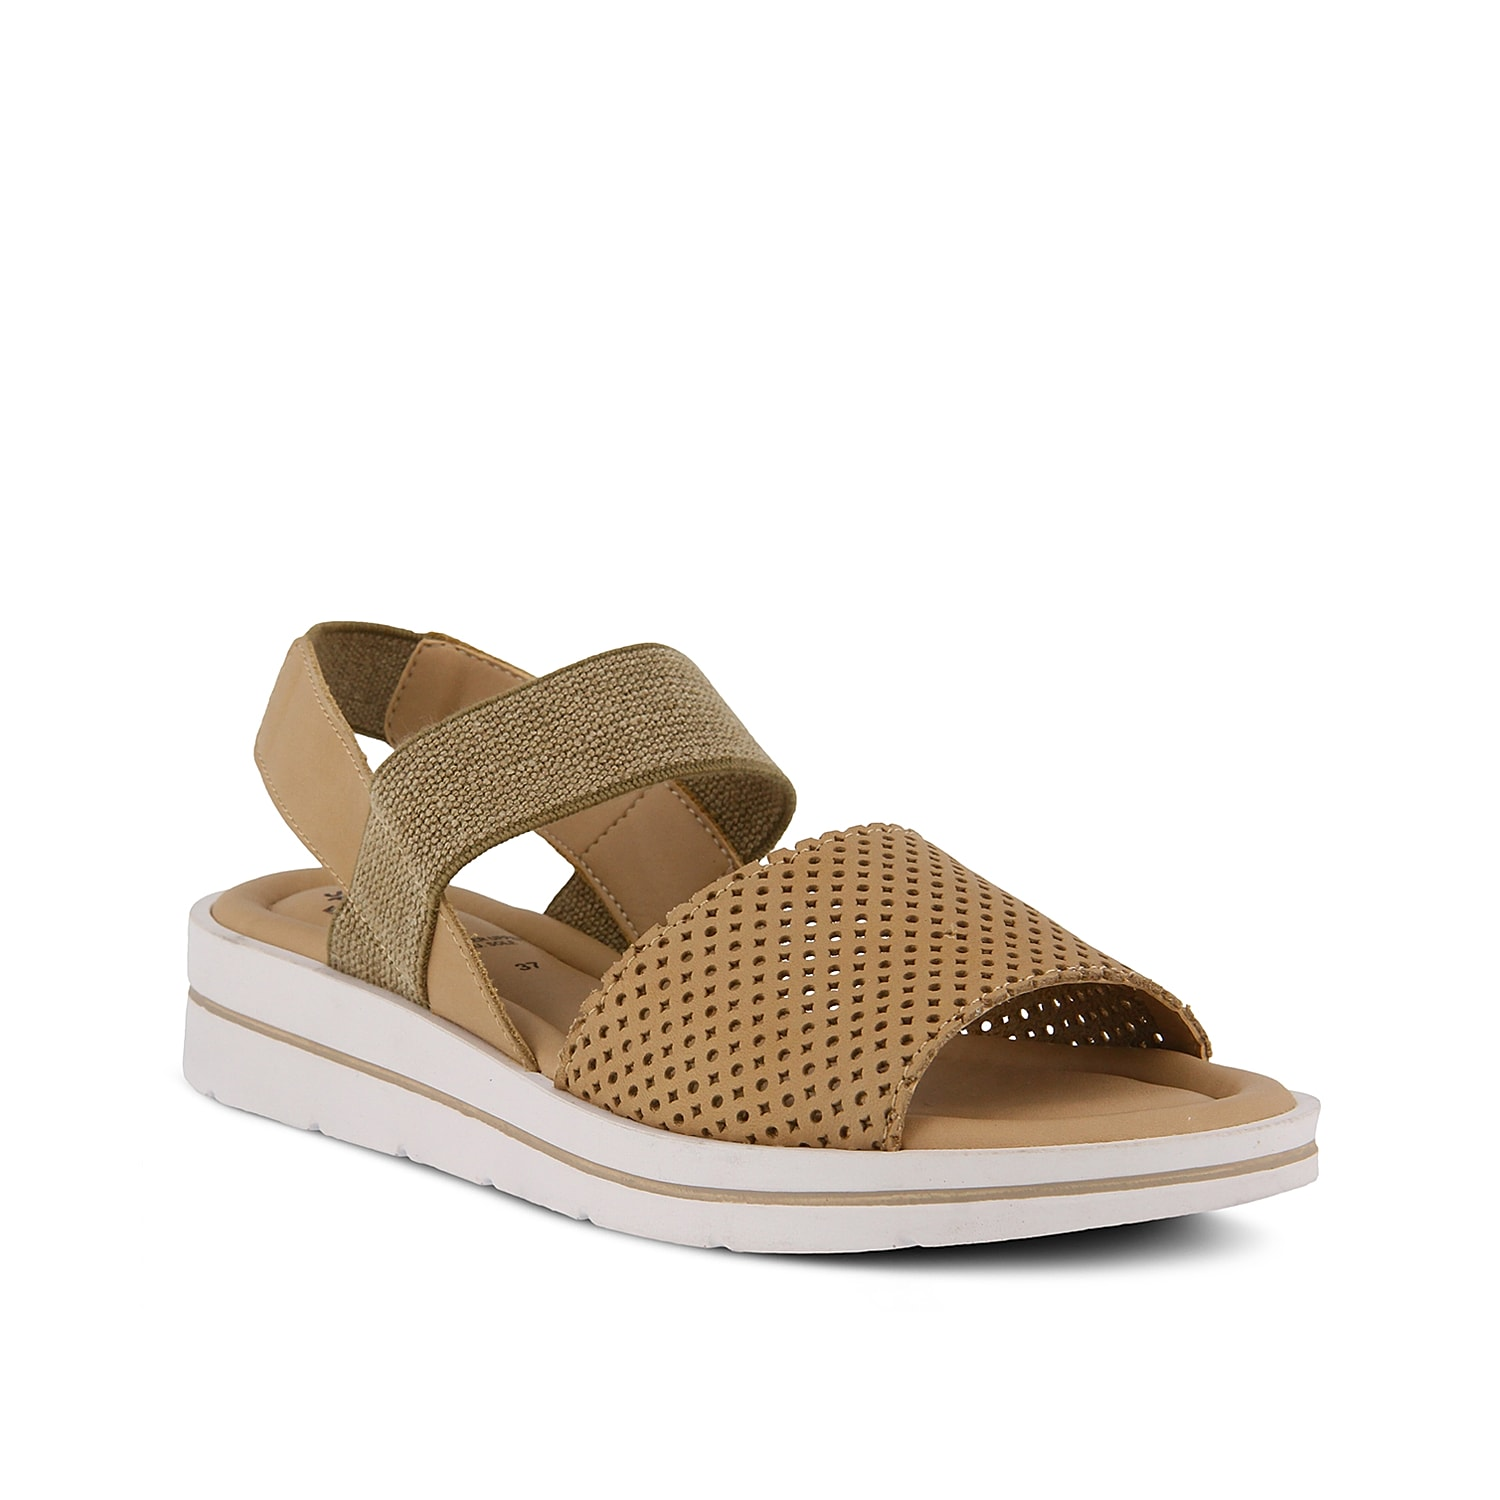 Complement capris or skirts with the Travel sport sandal from Spring Step. A stretchy band helps you pull on these leather sandals with ease!